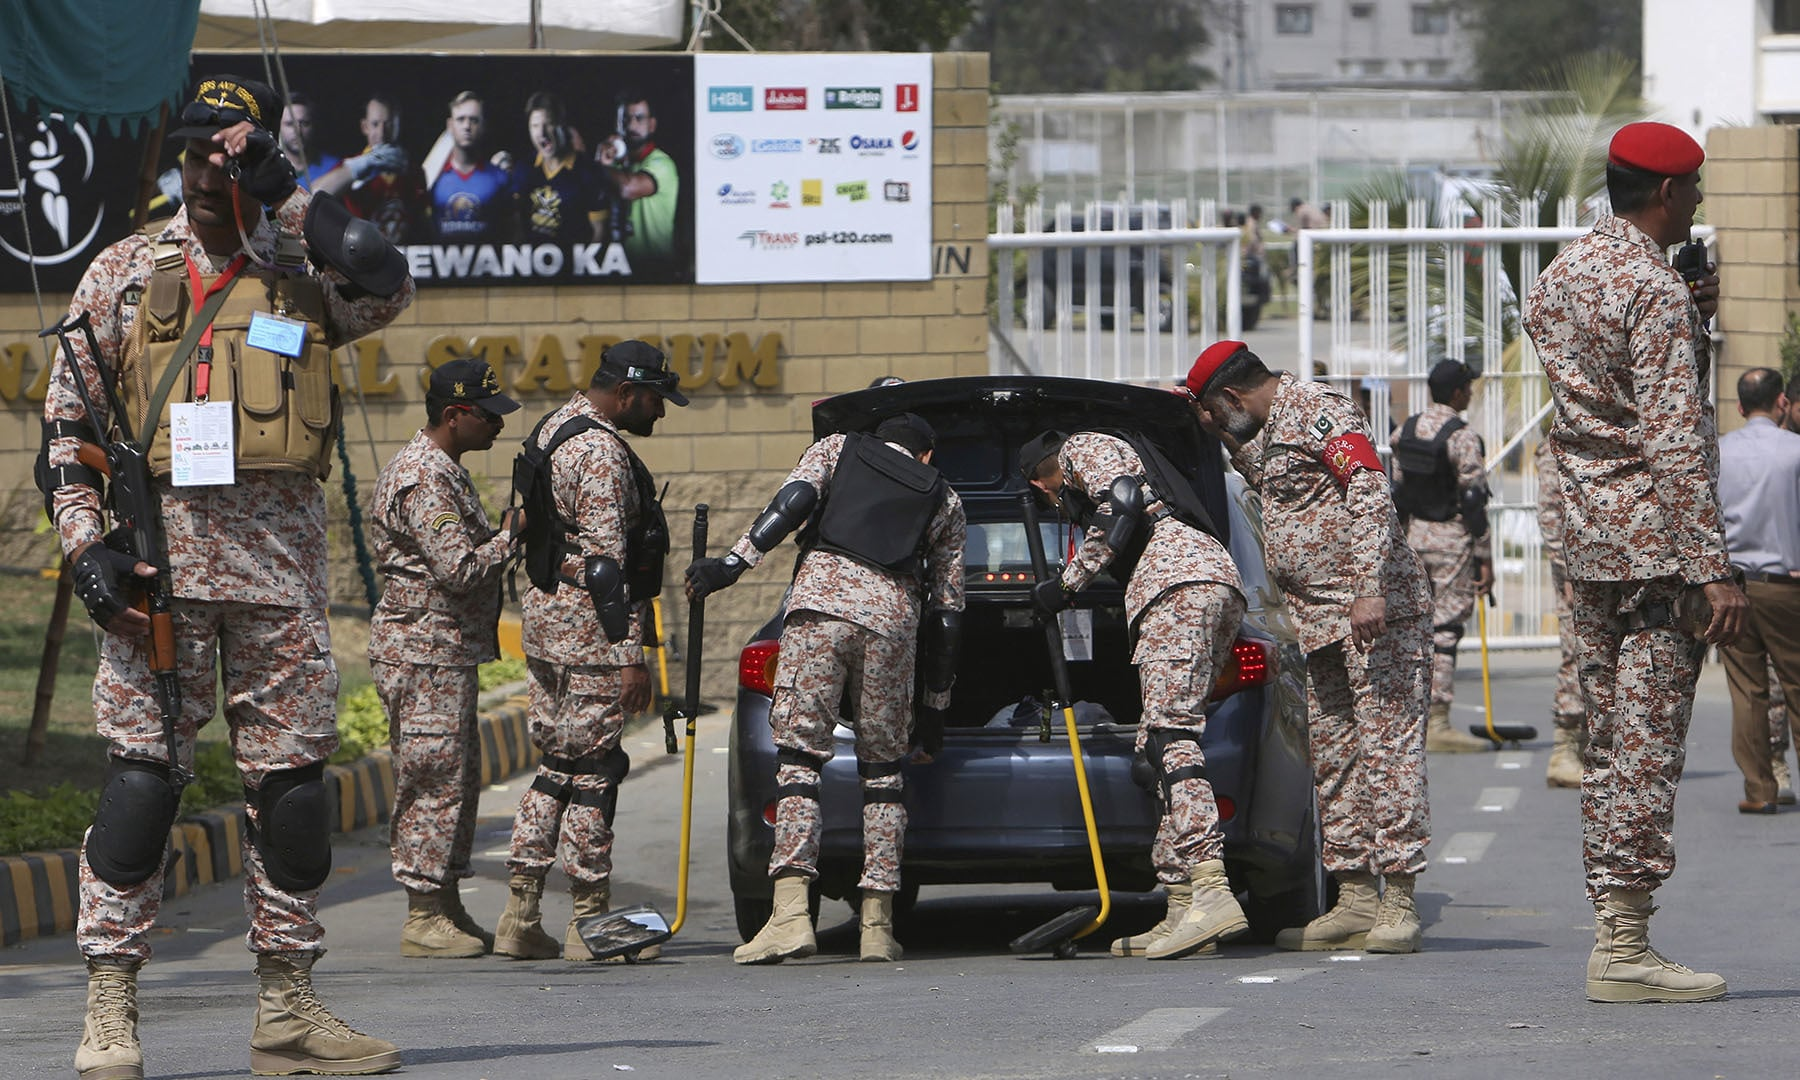 A paramilitary soldier stands guard while others search a car at the main entrance to National Stadium ahead of the PSL match in Karachi on Saturday. — AP